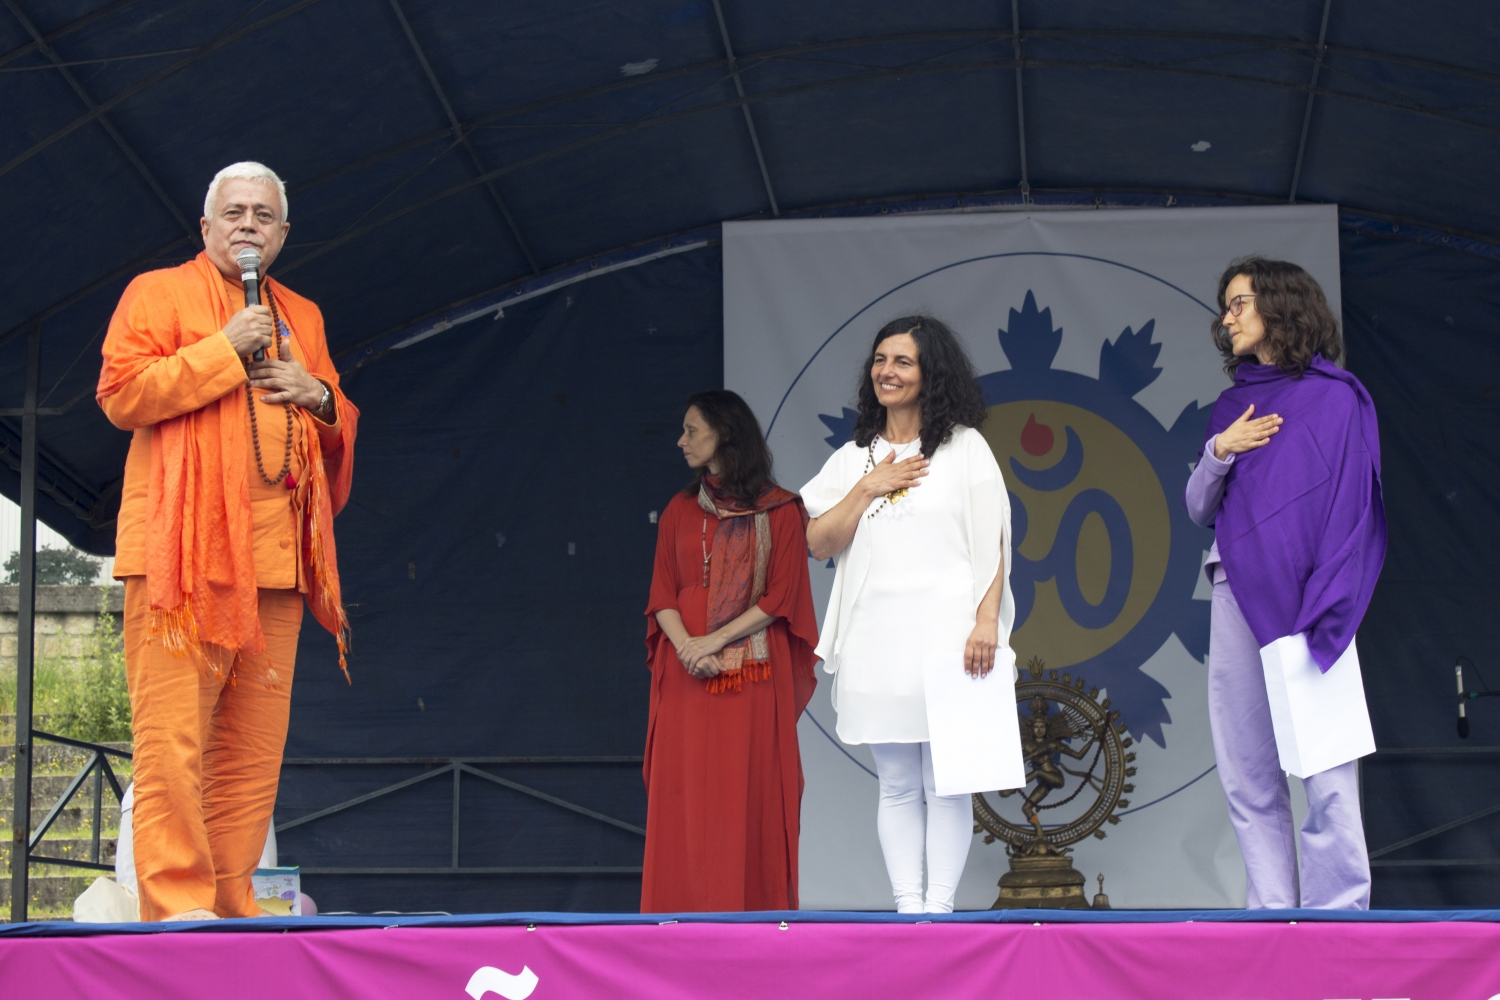 The Yogini of the year